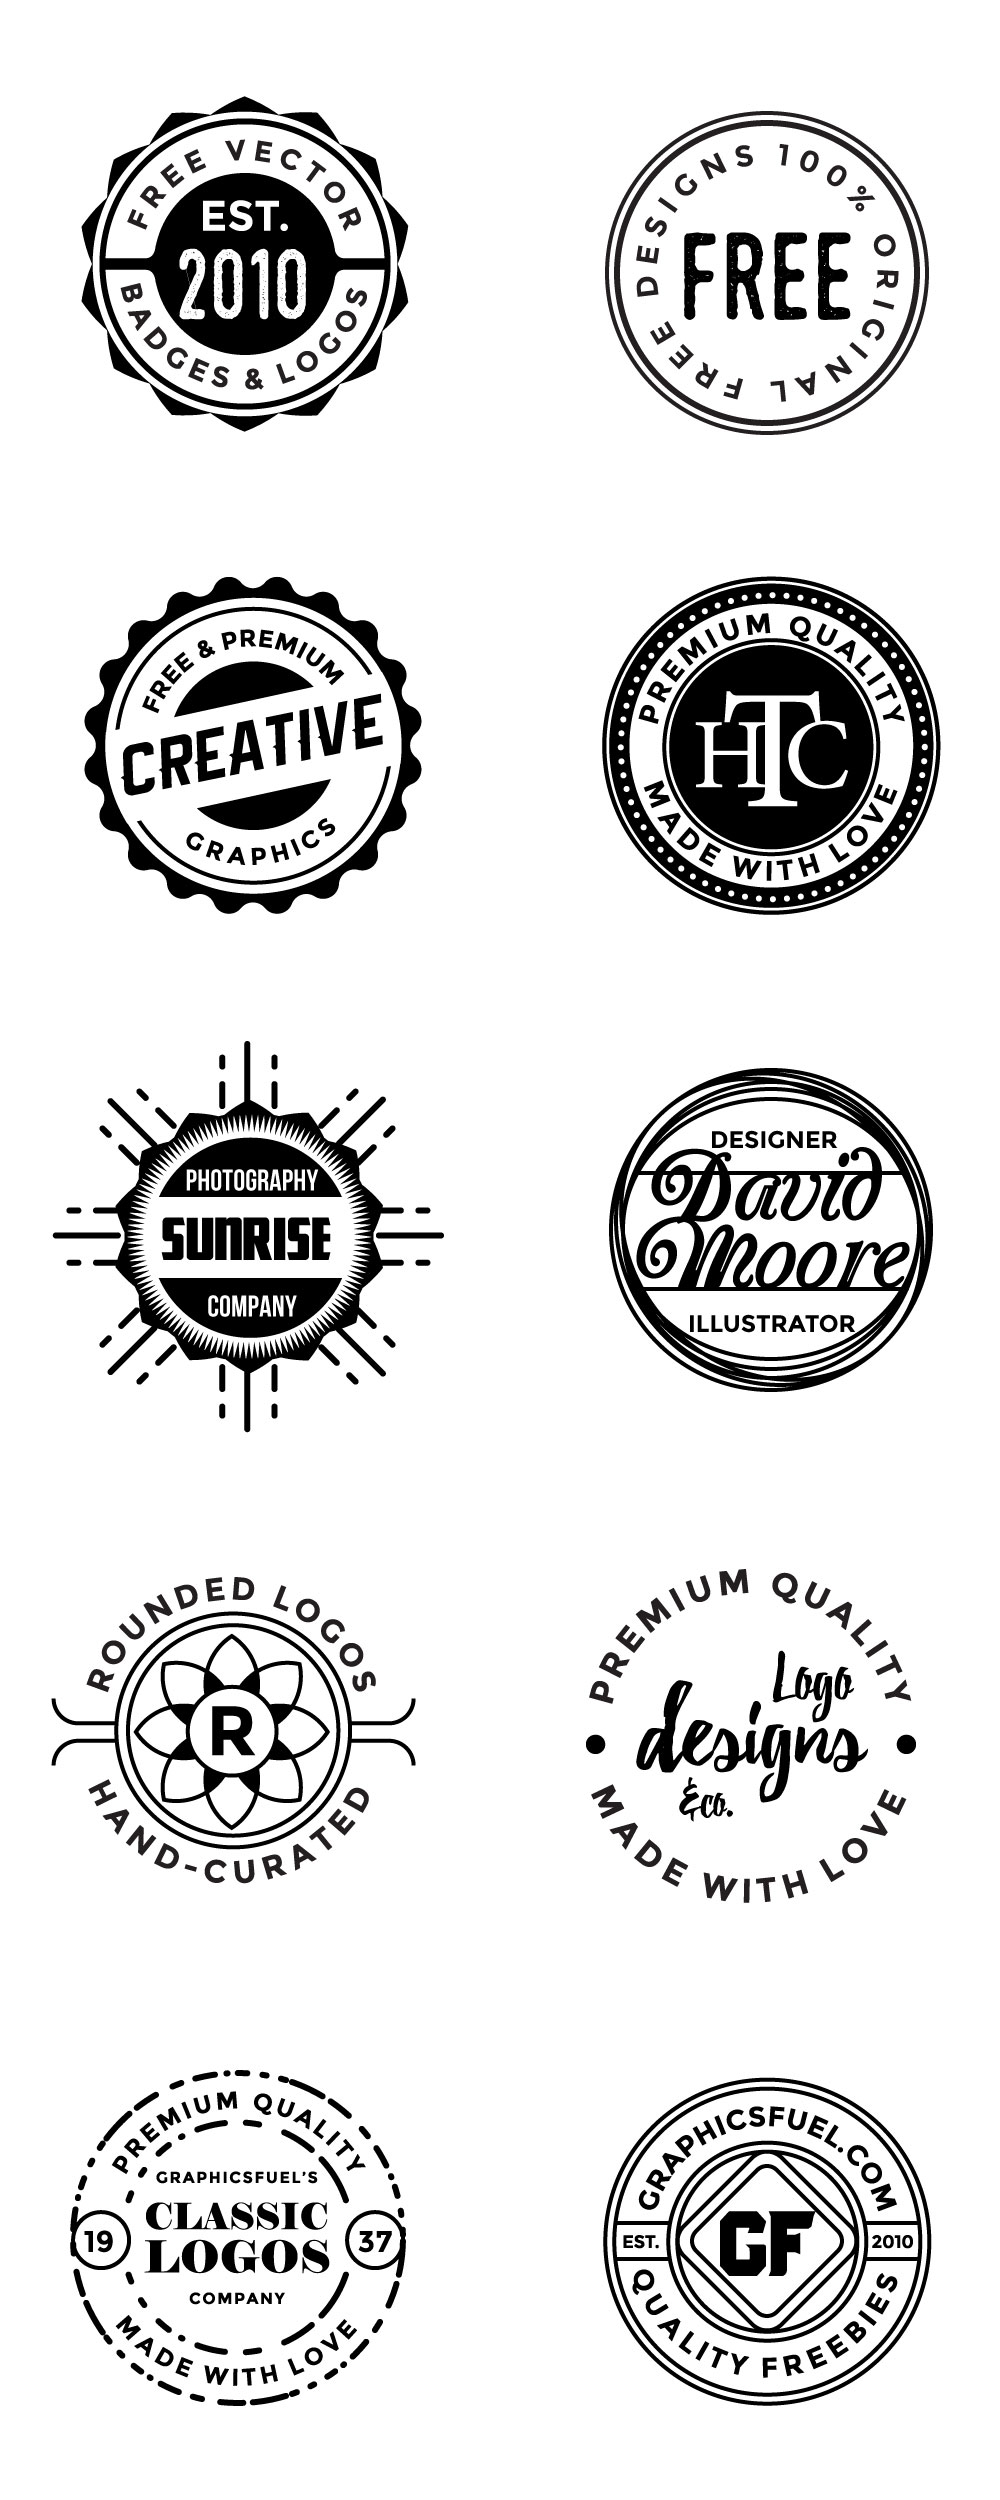 Round Logos and Badges